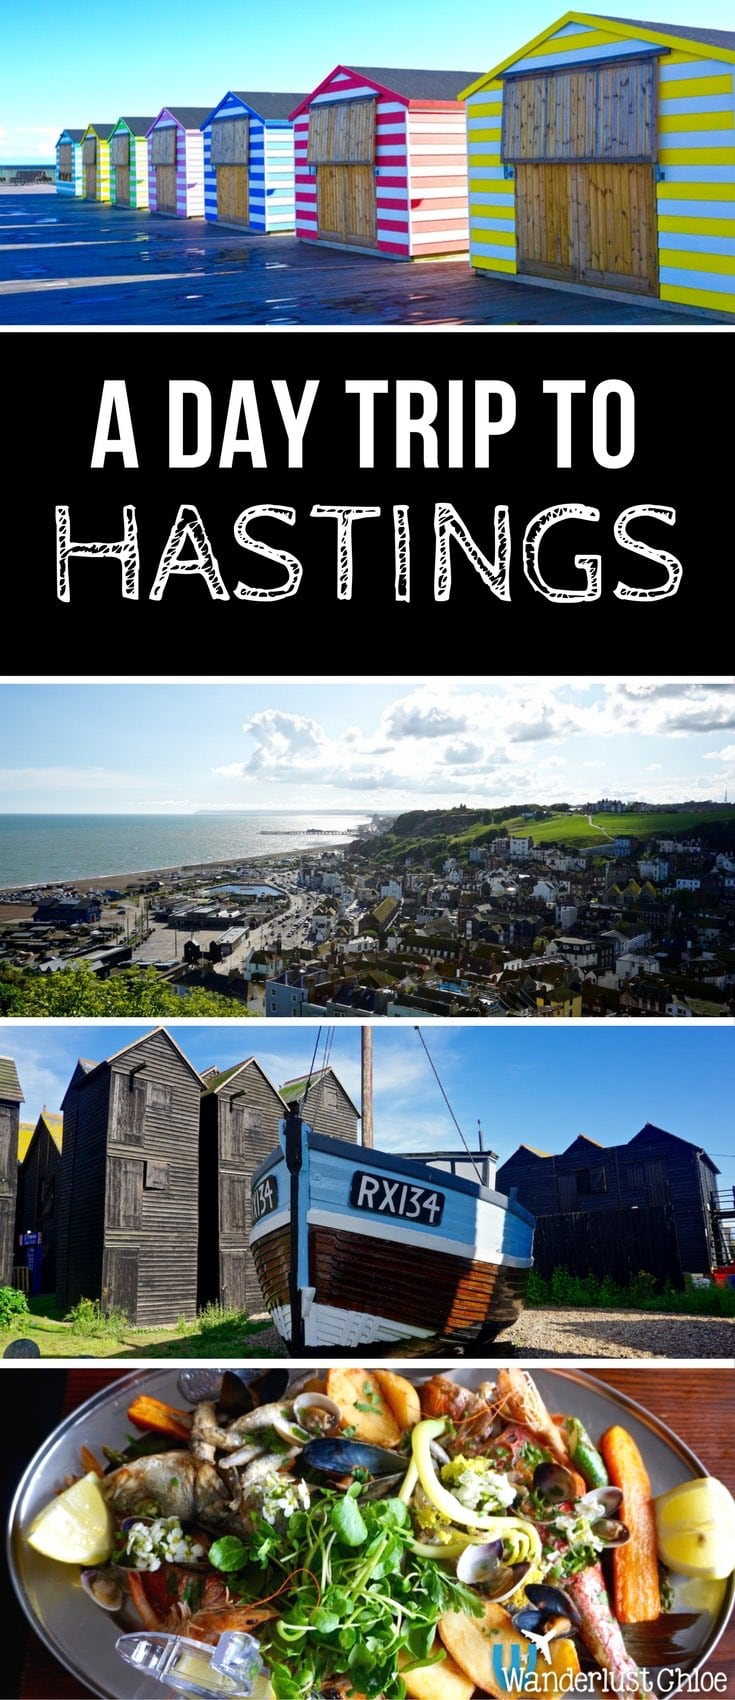 A Day Trip To Hastings